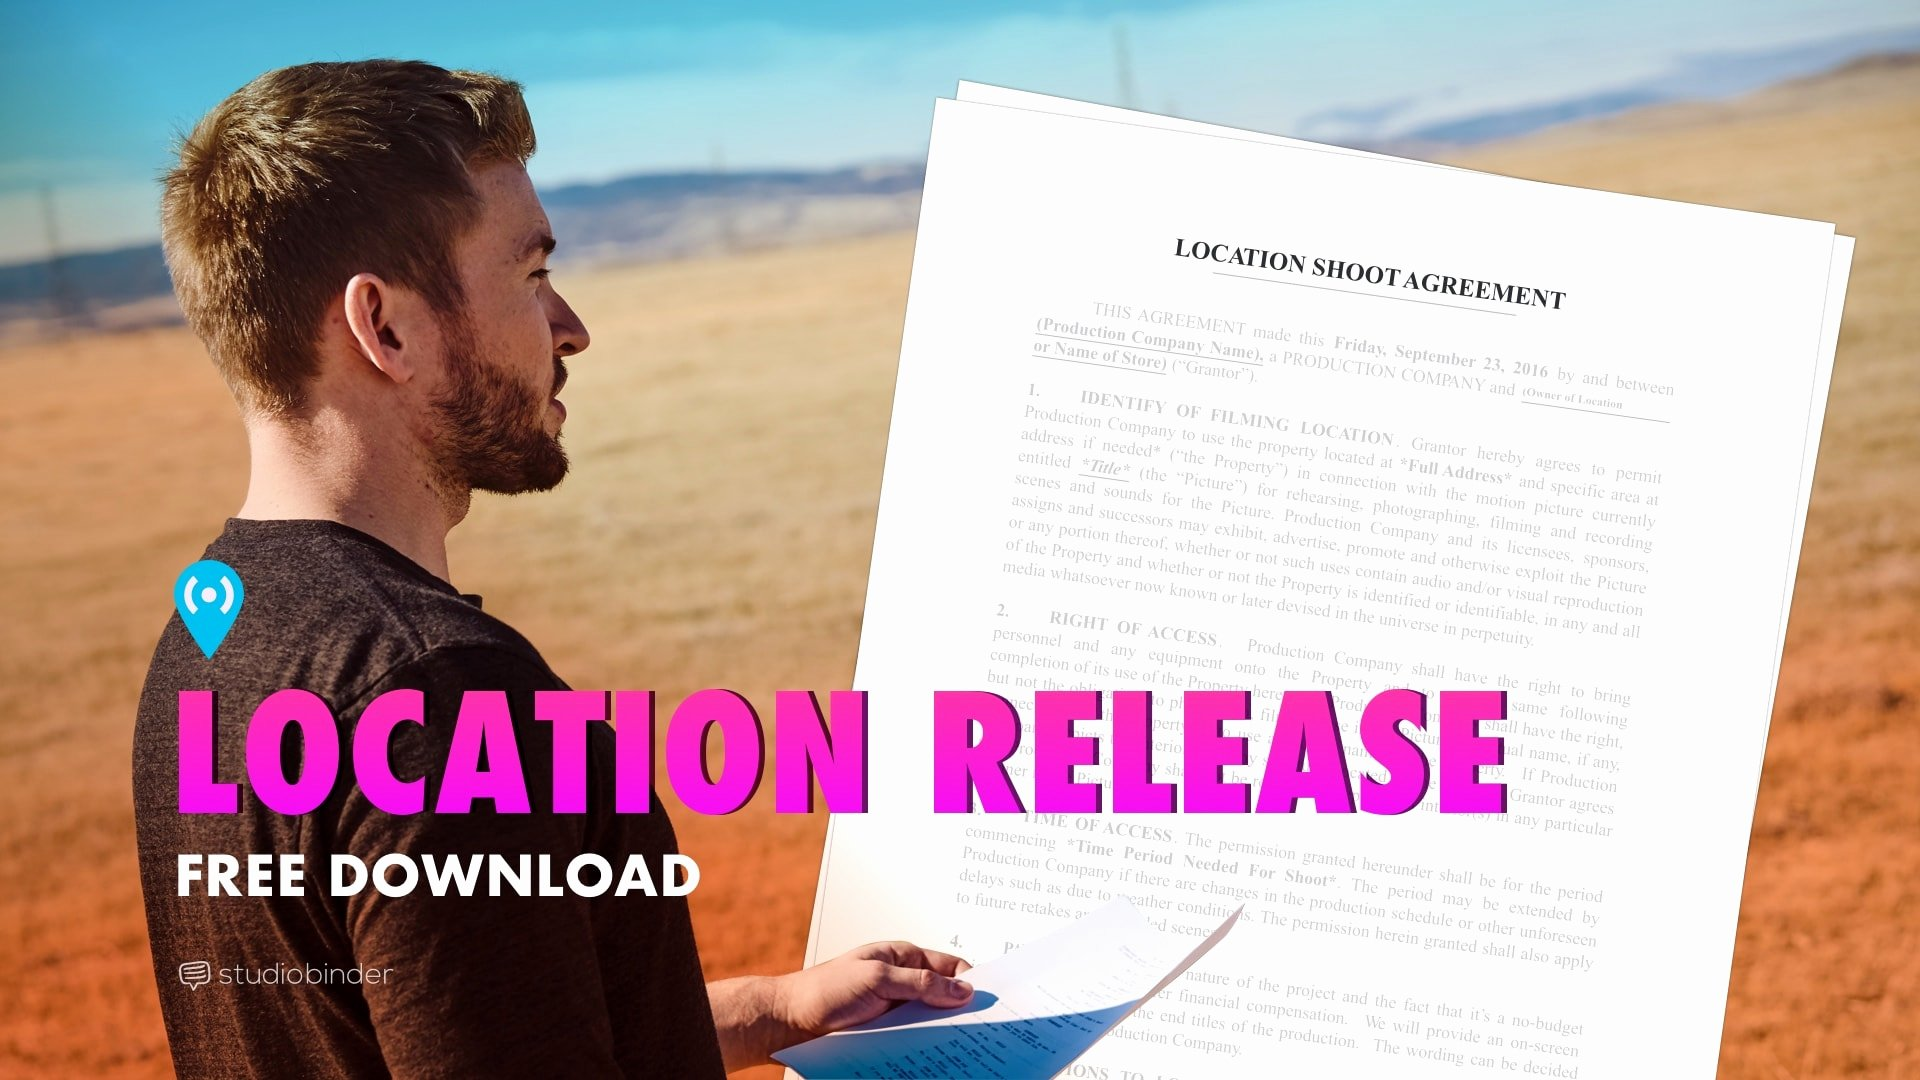 Location Release form Template Luxury Download Free Location Release form Template